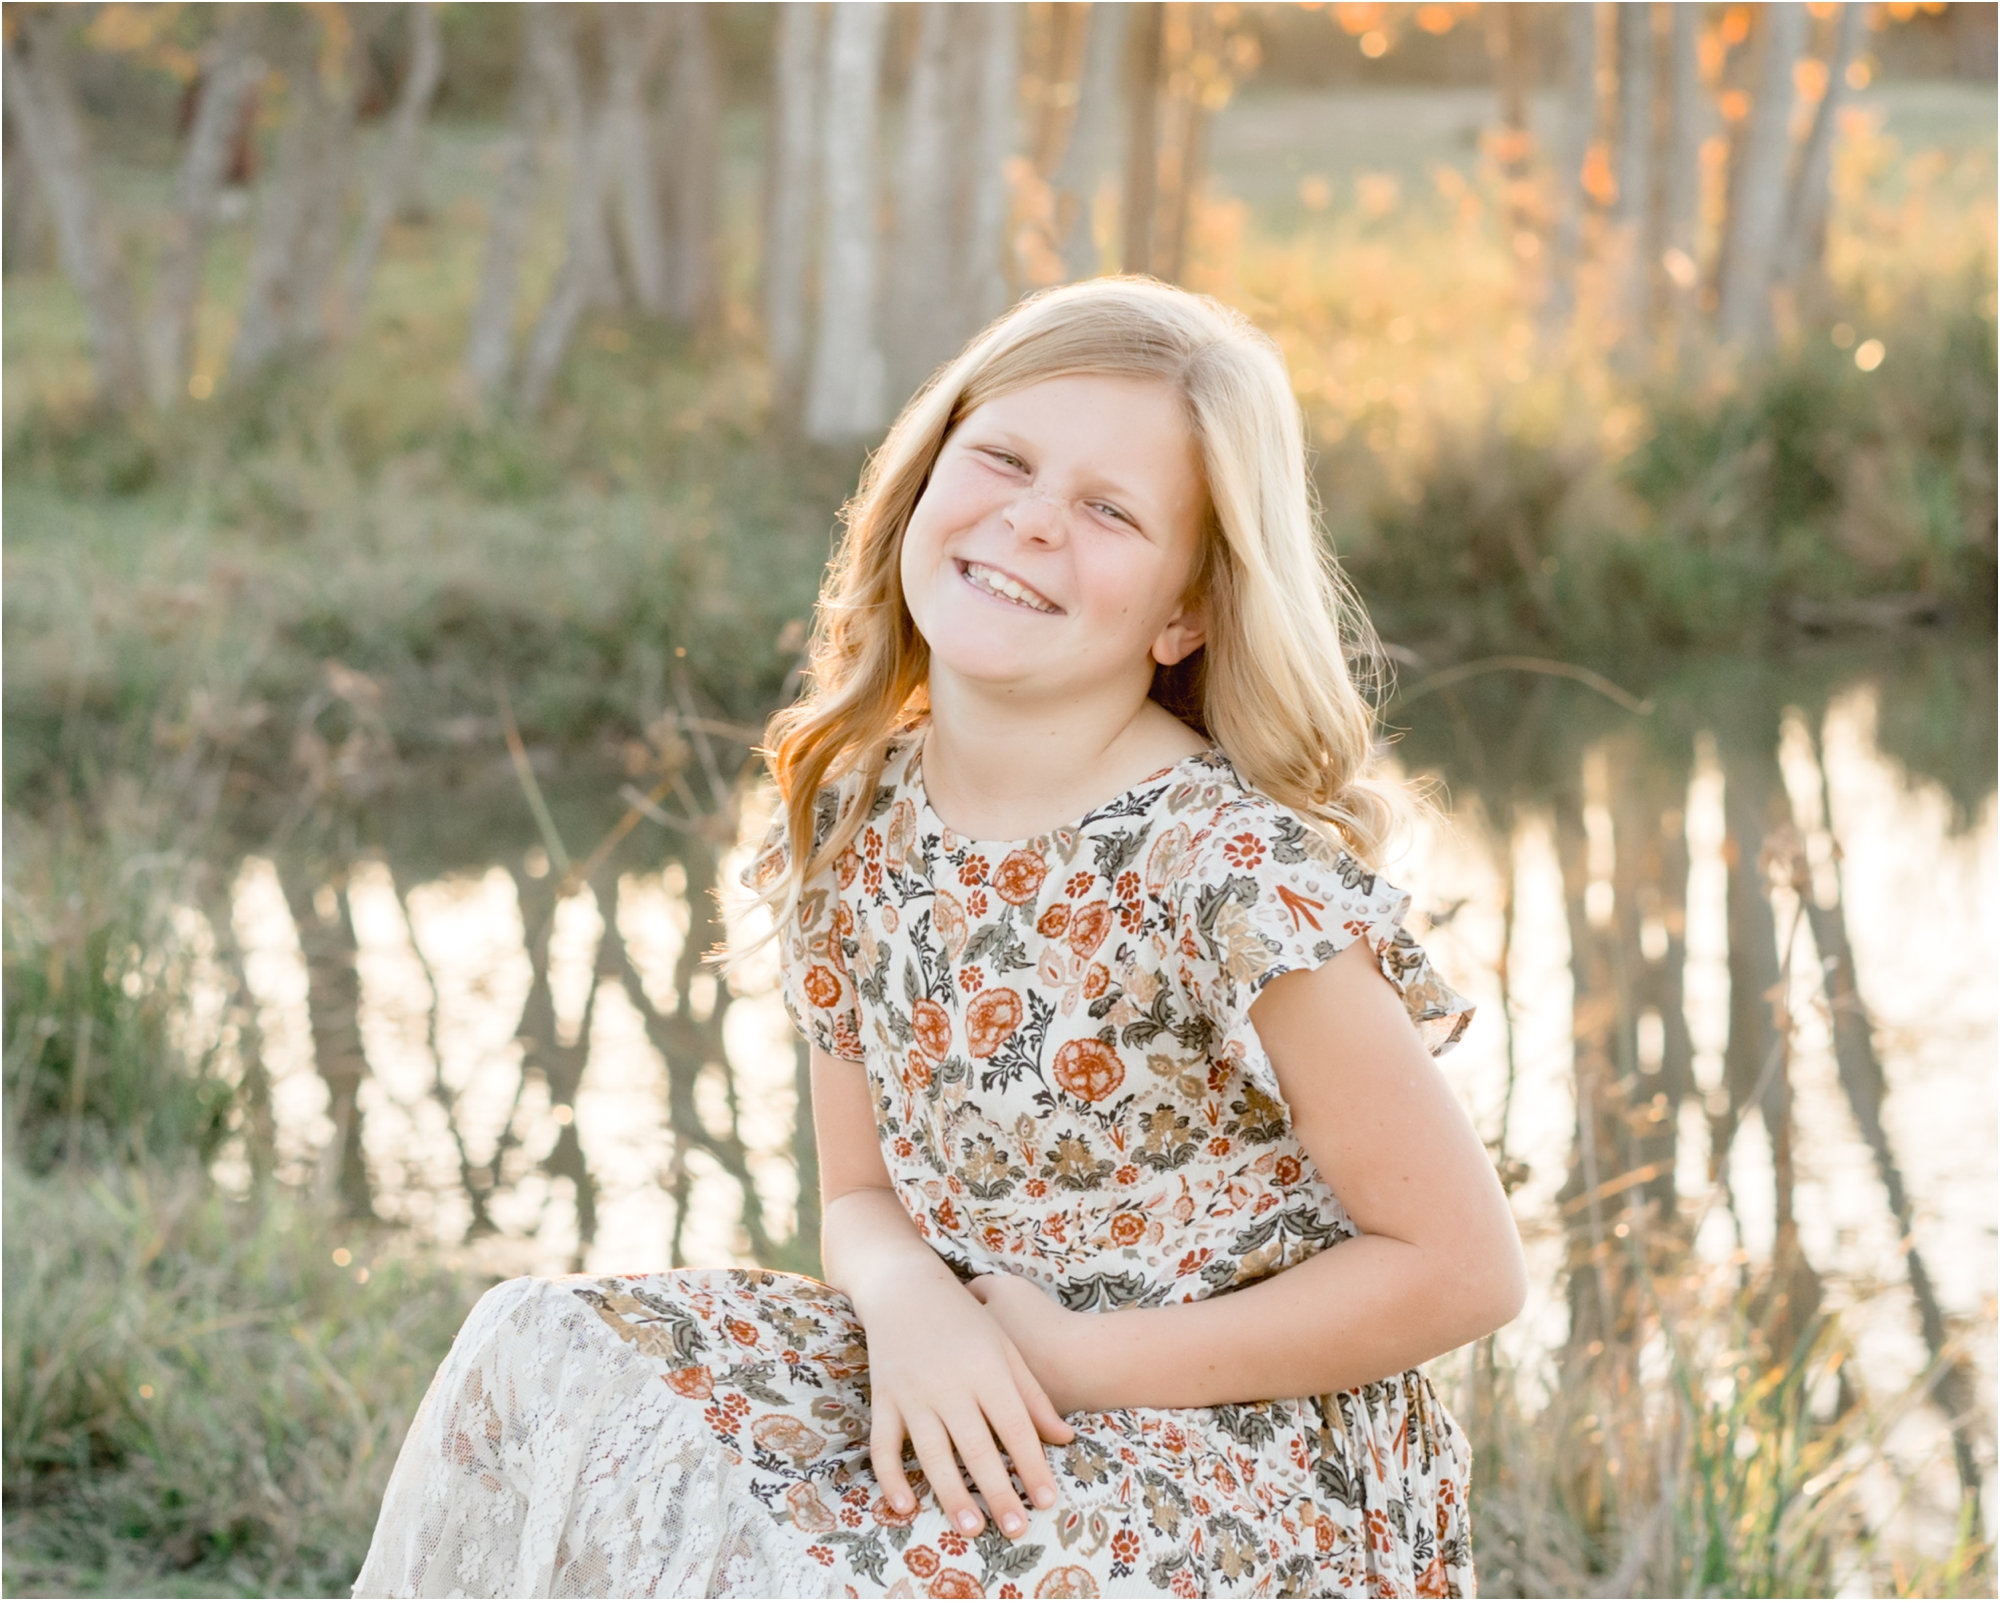 Smiling oldest daughter during family session in backyard with sunlight on pond. Photo by Lifetime of Clicks Photography.